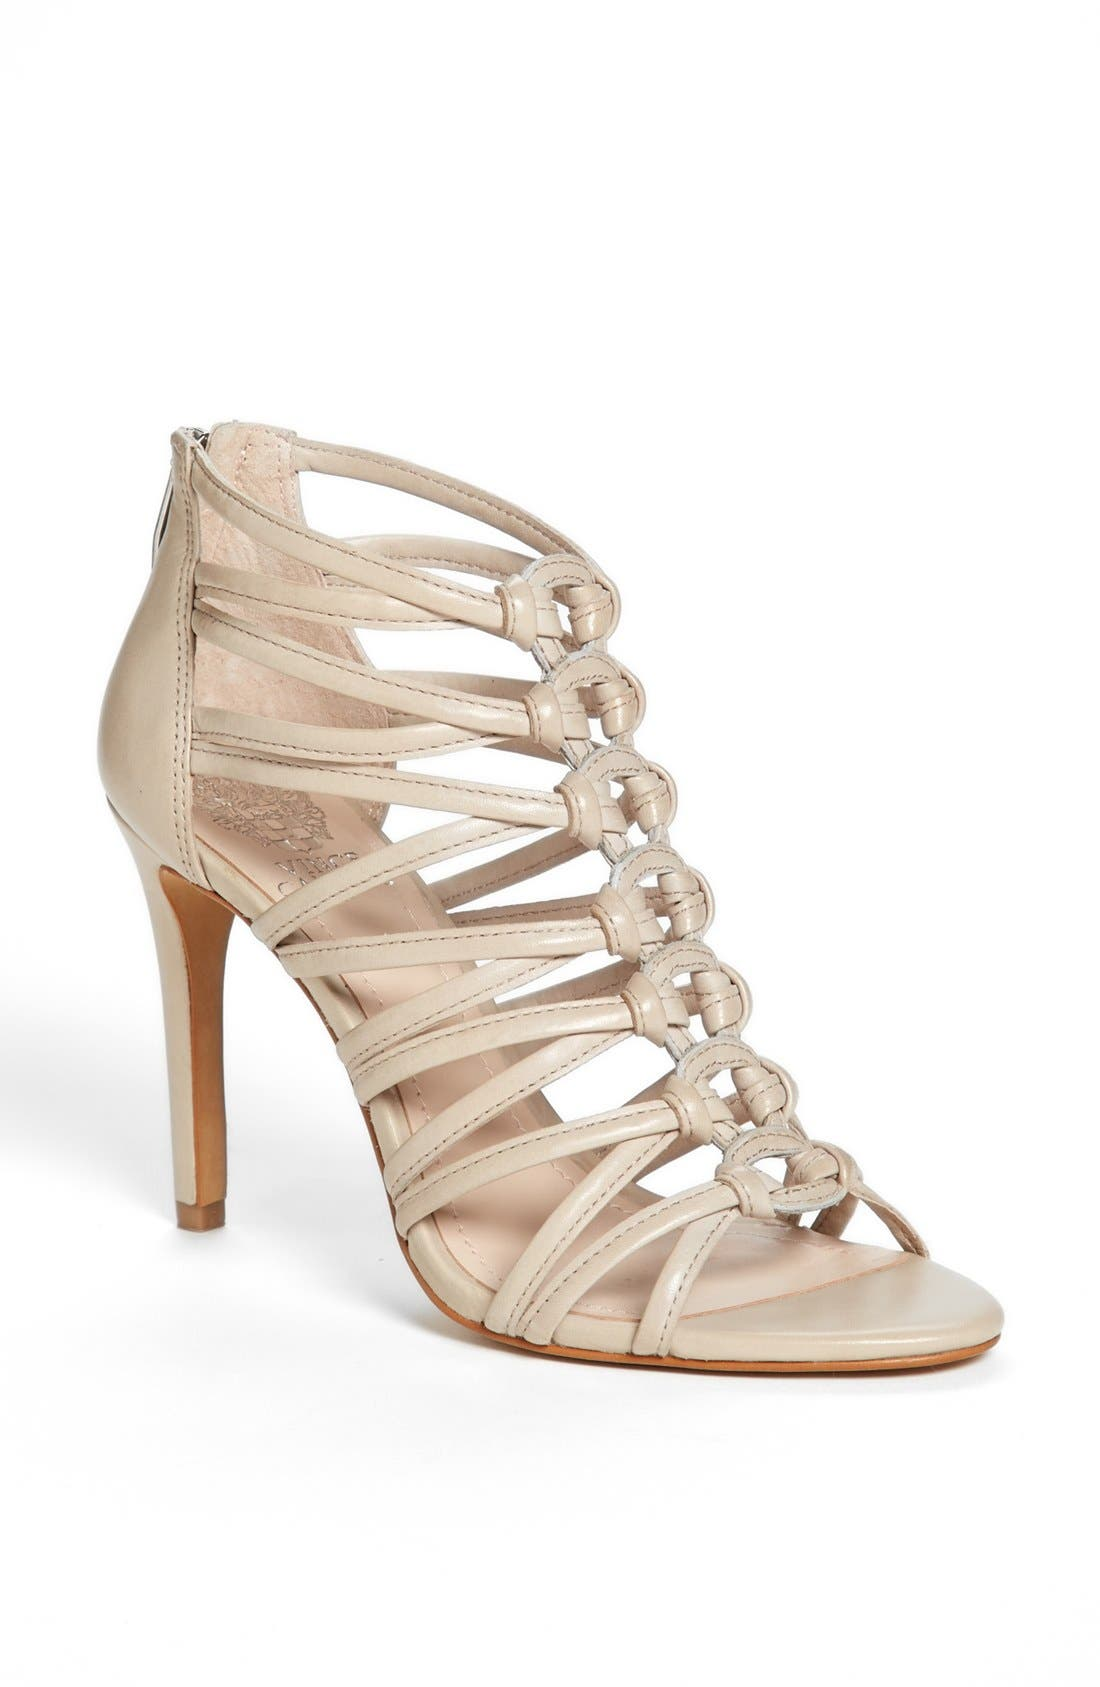 Alternate Image 1 Selected - Vince Camuto 'Ombra' Nappa Leather Sandal